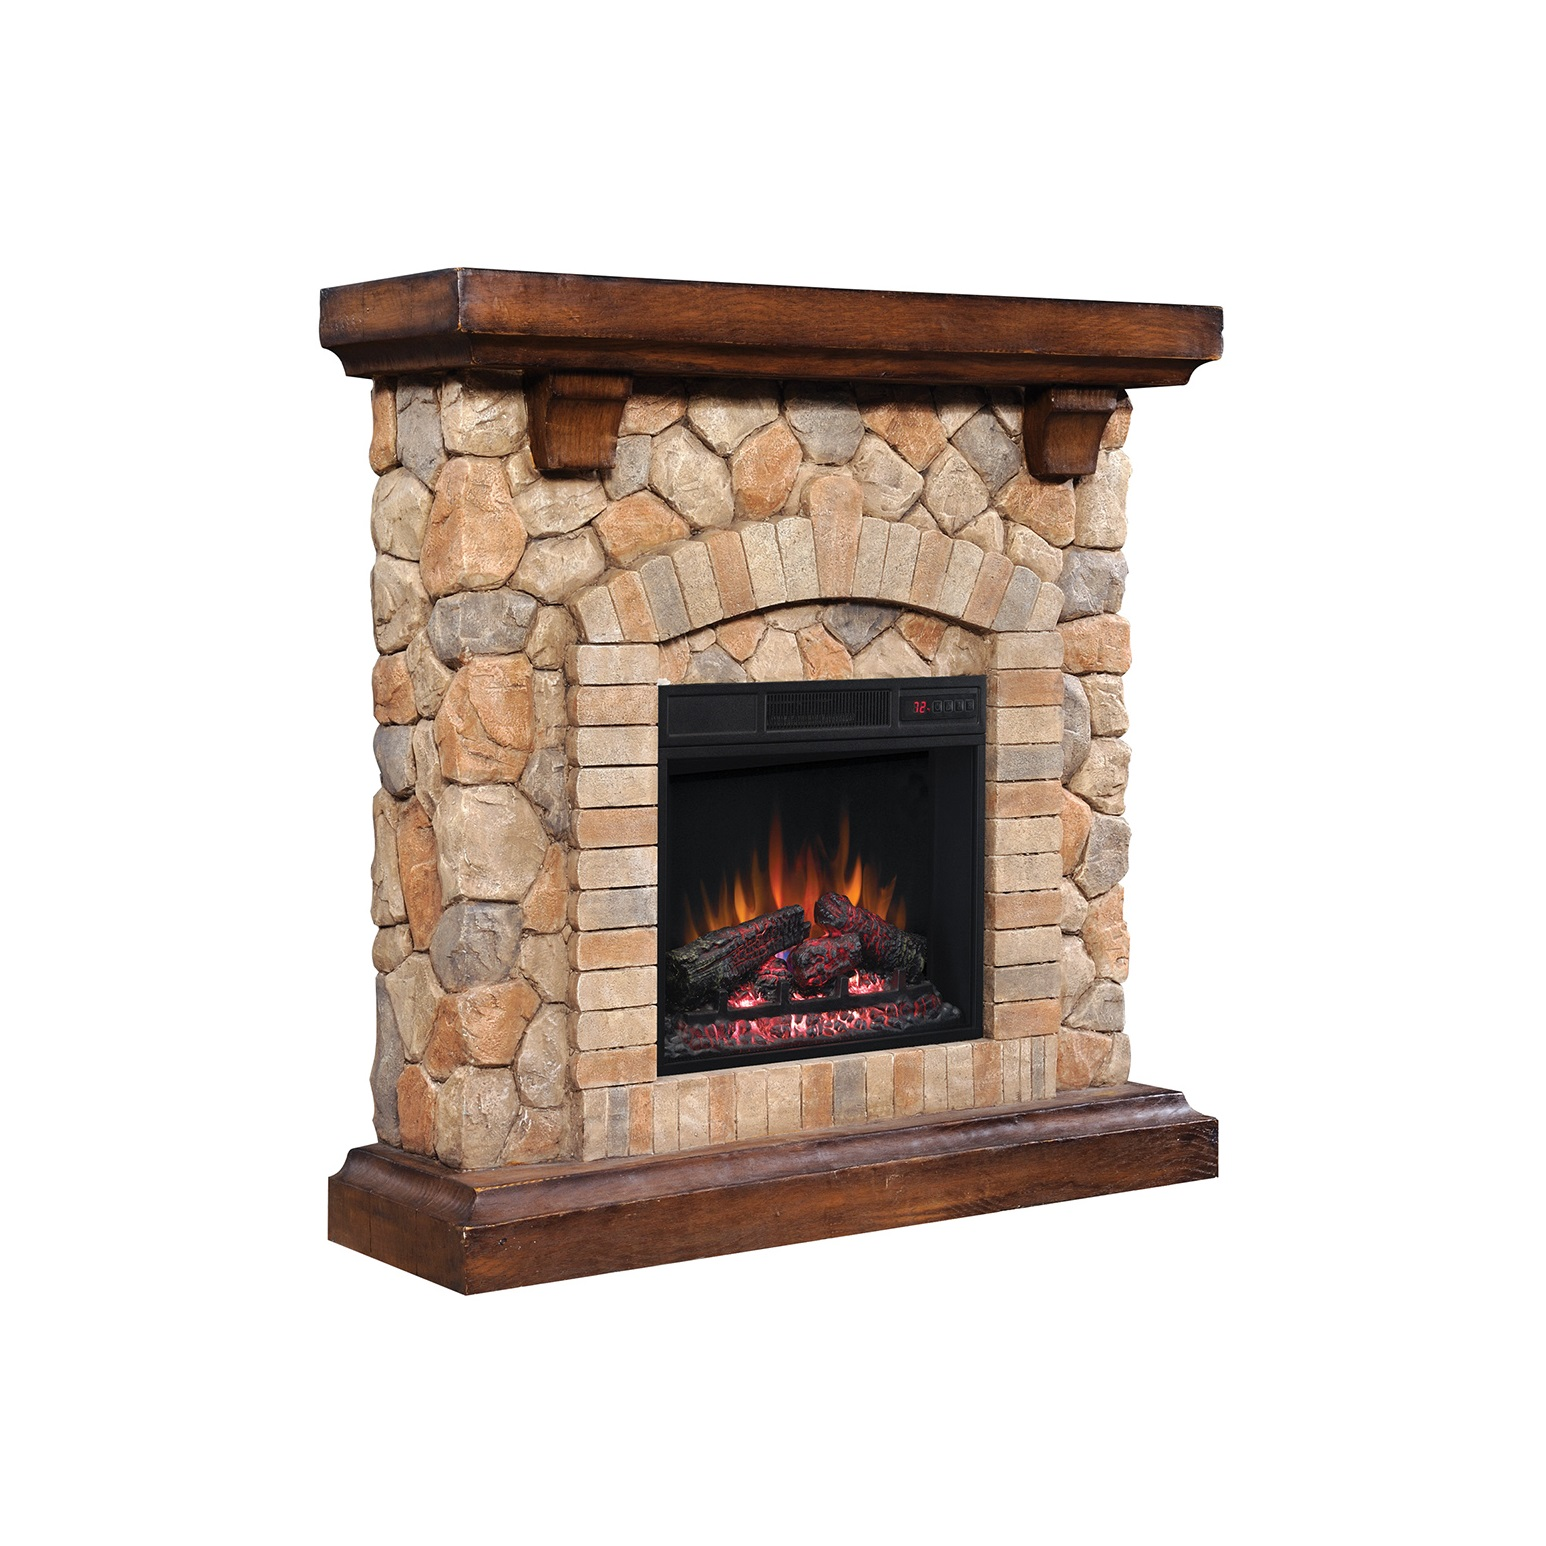 Tequesta Stone Old Wood Brown Electric Fireplace